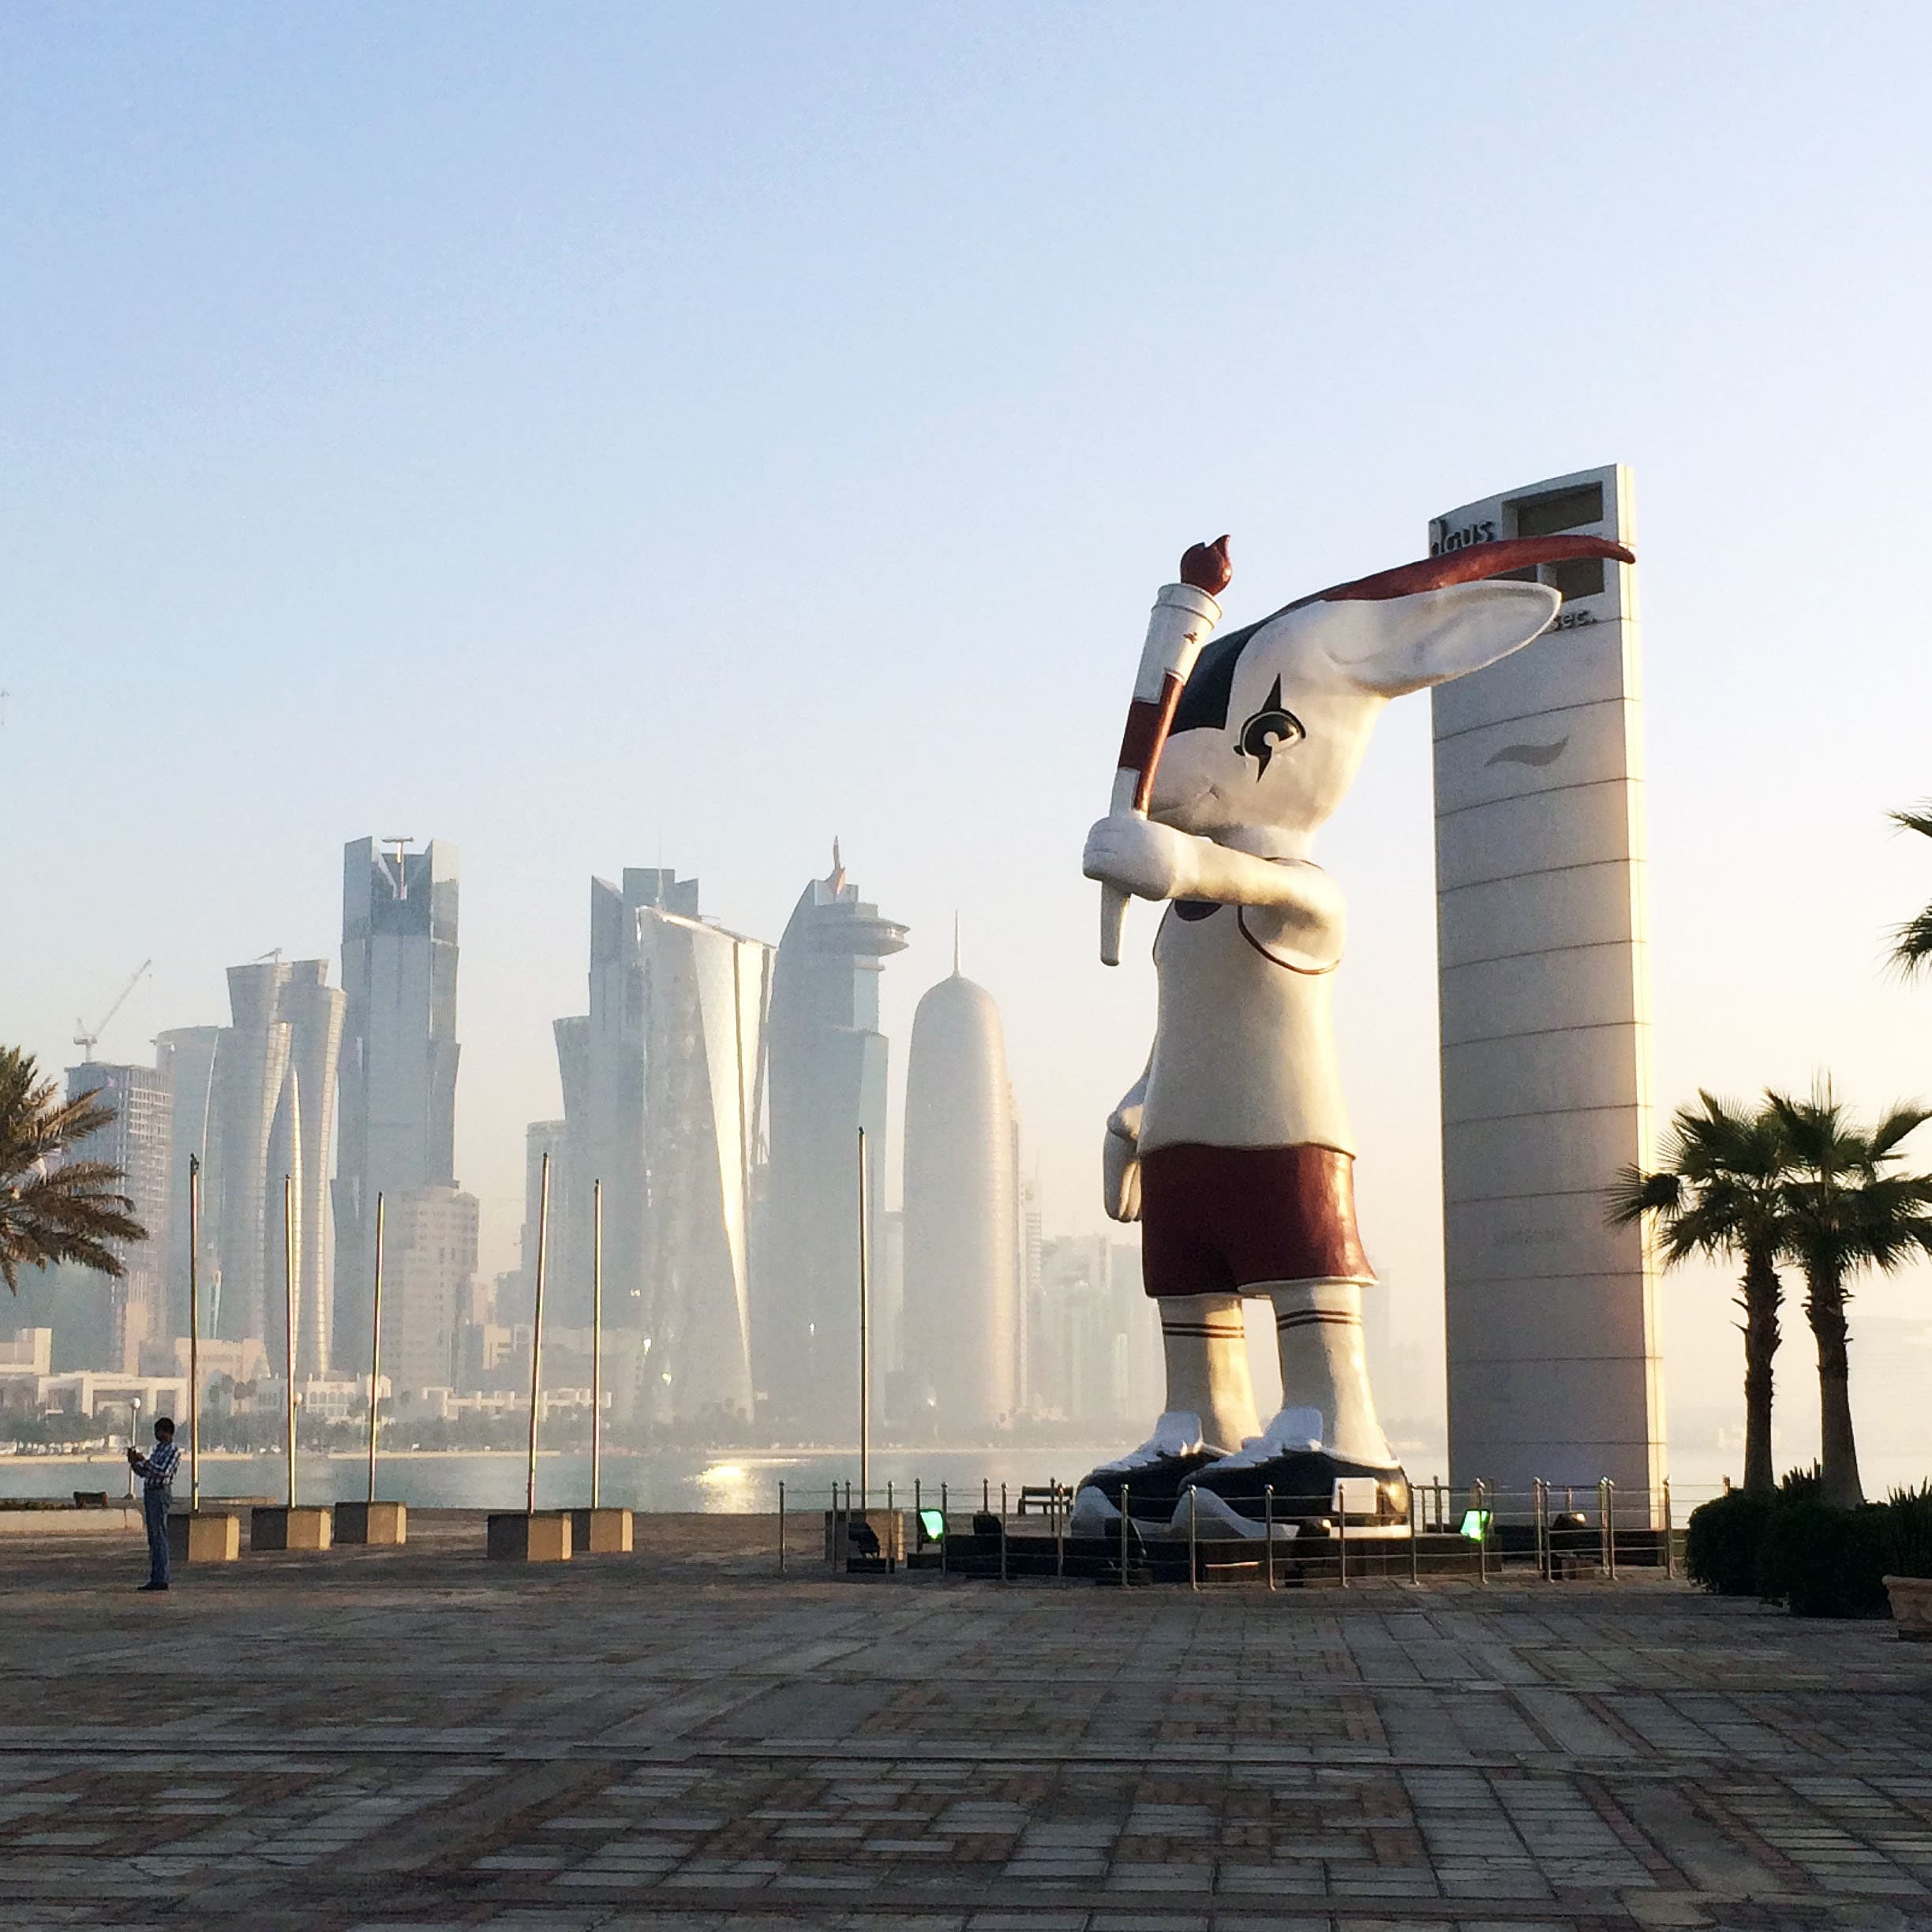 Orry the Oryx — the official mascot of the 2006 Asian games. It is now a permanent fixture on the Doha Corniche.